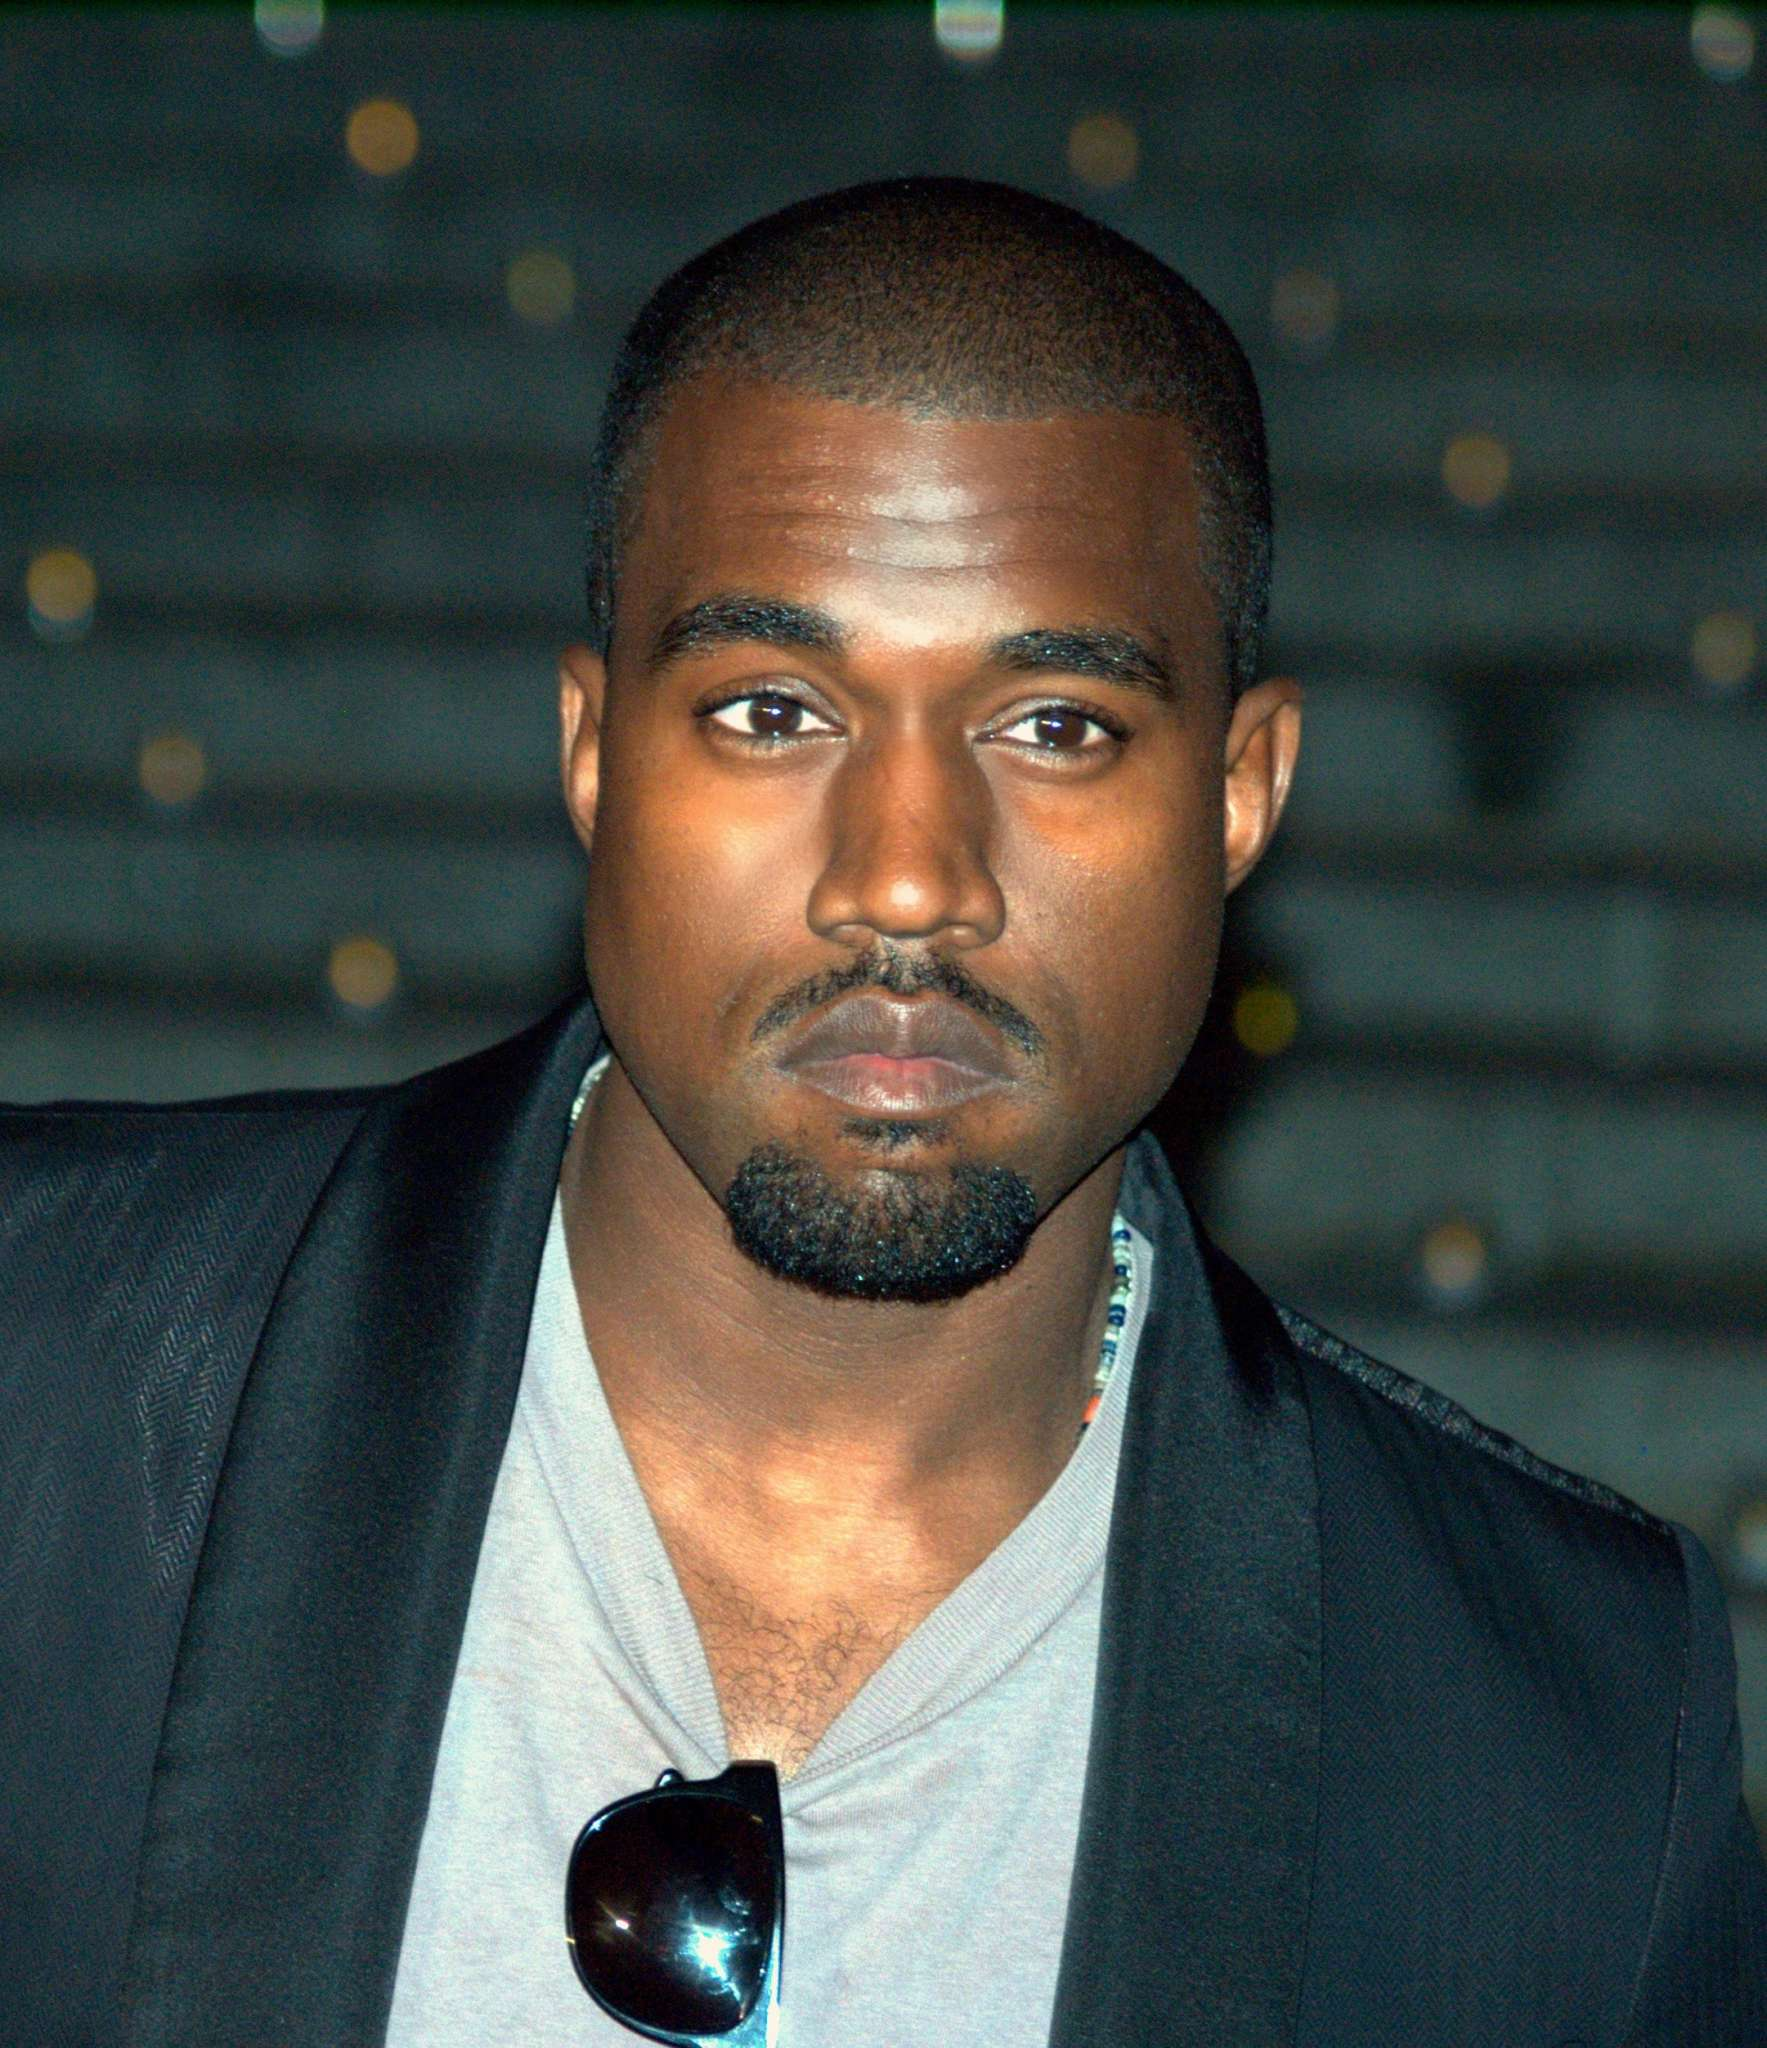 Kanye West's Fans Are Going Crazy With Excitement